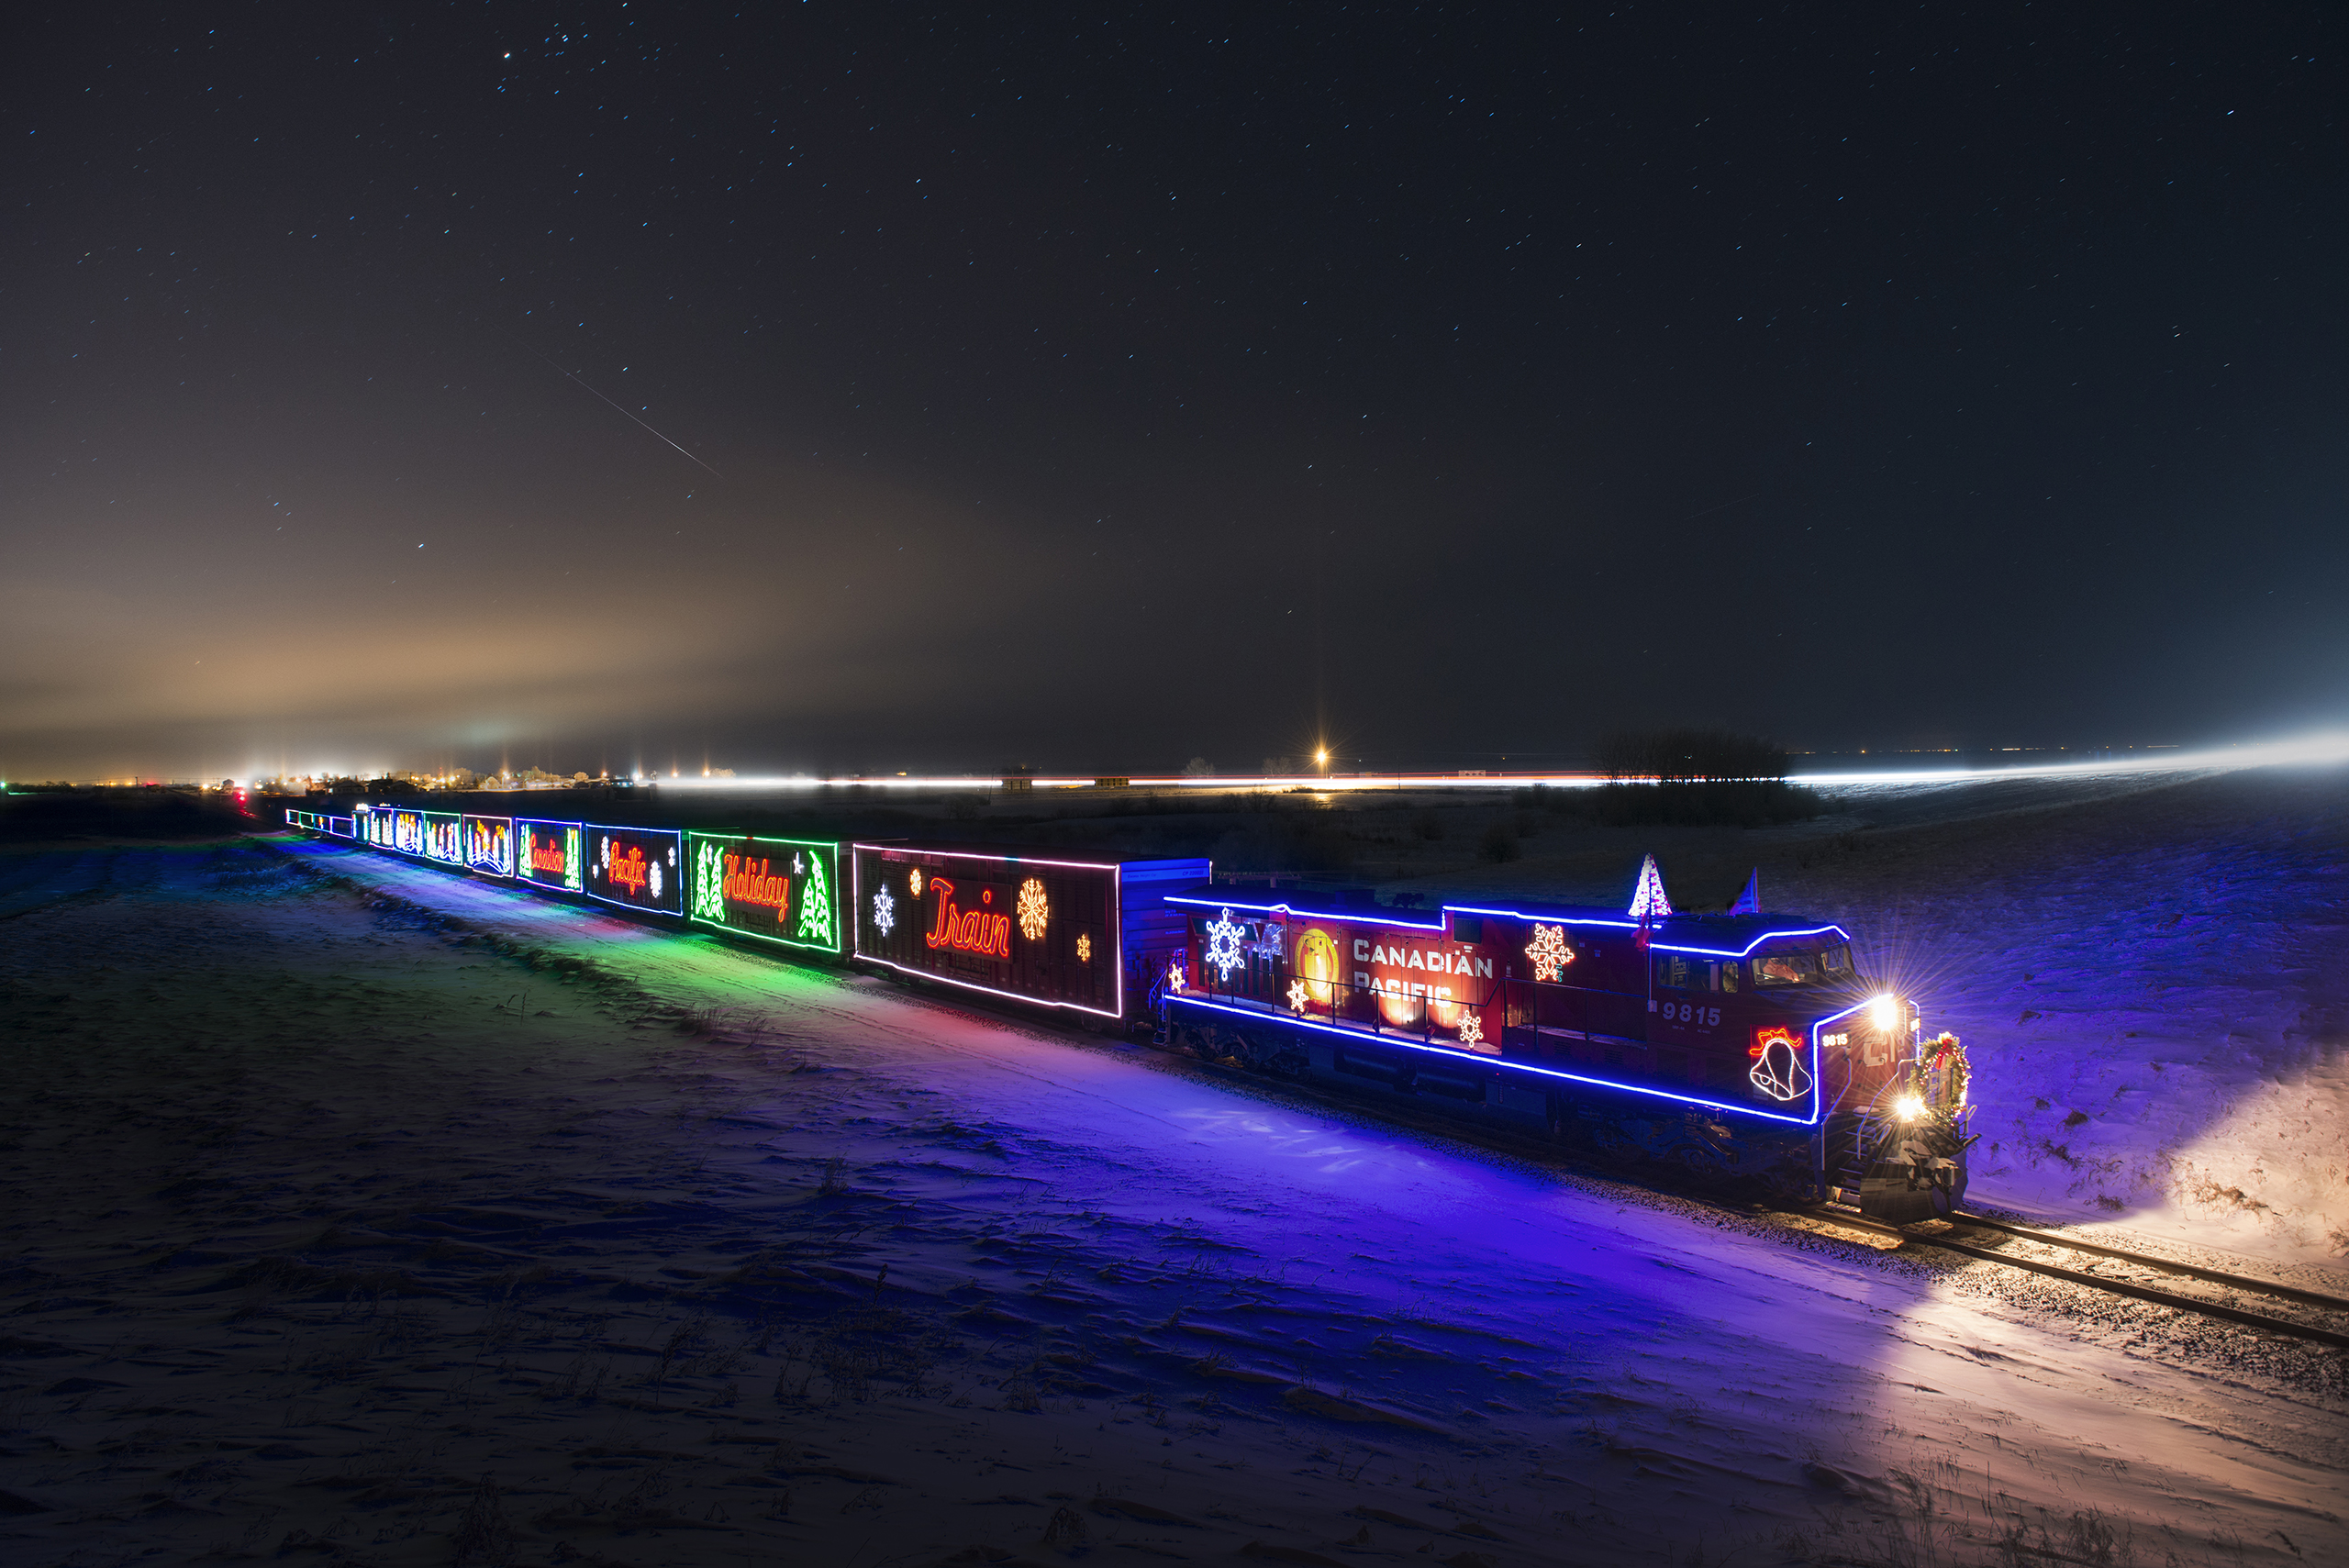 5 Reasons to Experience the Canadian Pacific Holiday Train